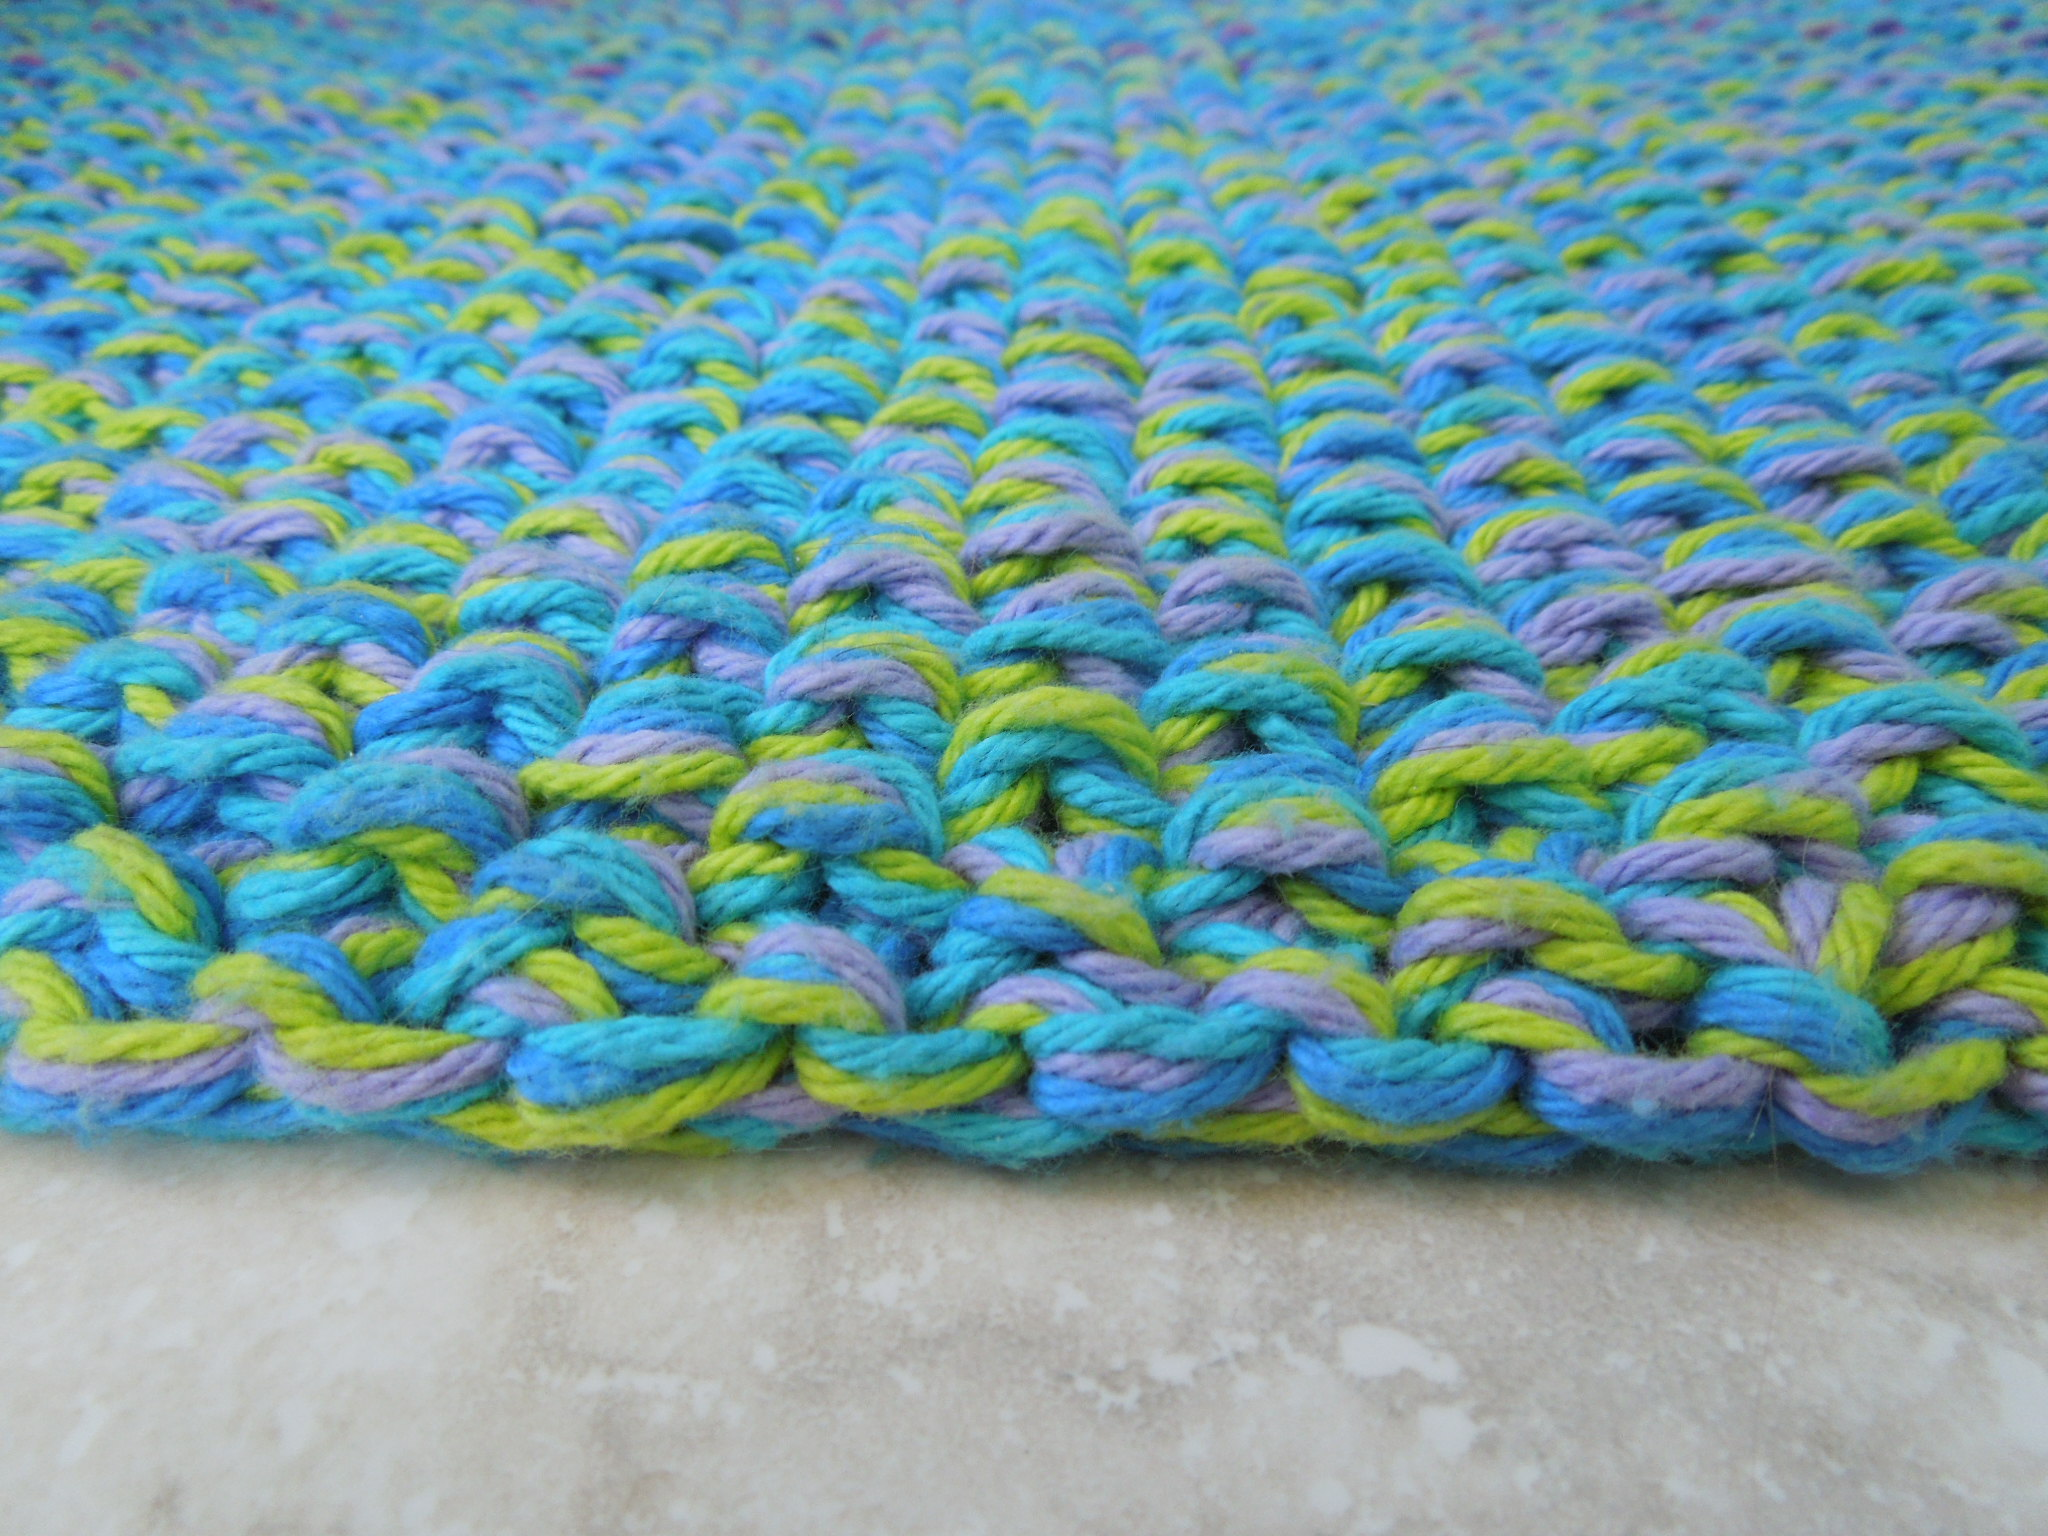 Knitting Pattern For Rug : Cotton Bath Rug Knitting Pattern